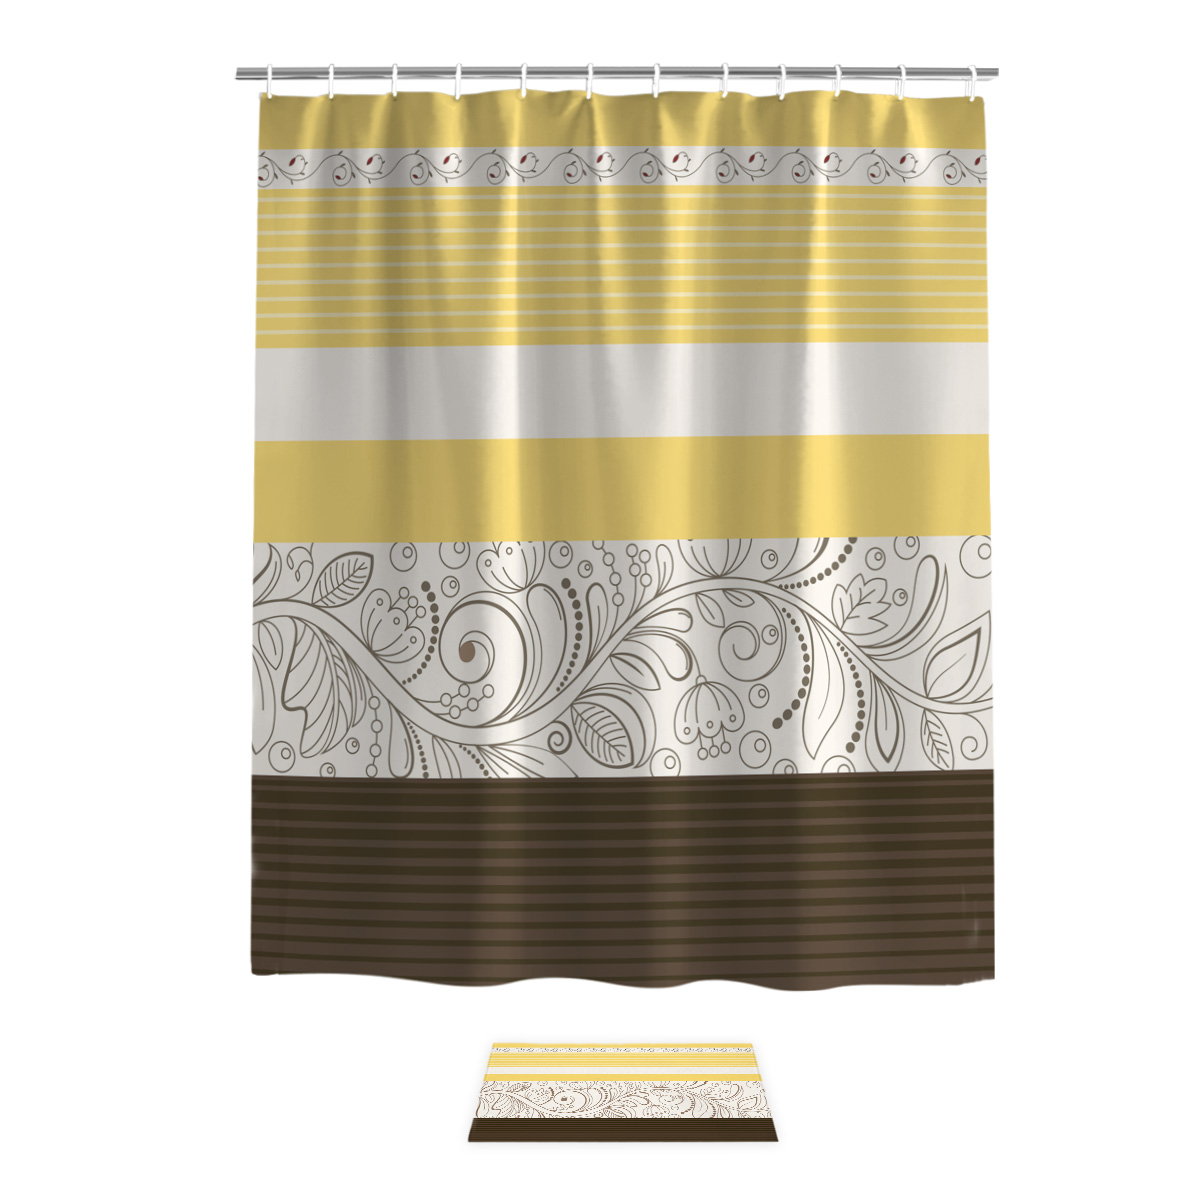 Us 14 27 26 Off Vintage Flower Pattern Yellow Shower Curtain Bath Sets With Rugs Bathroom Decor Set Waterproof Outside Modern Rings House Women In